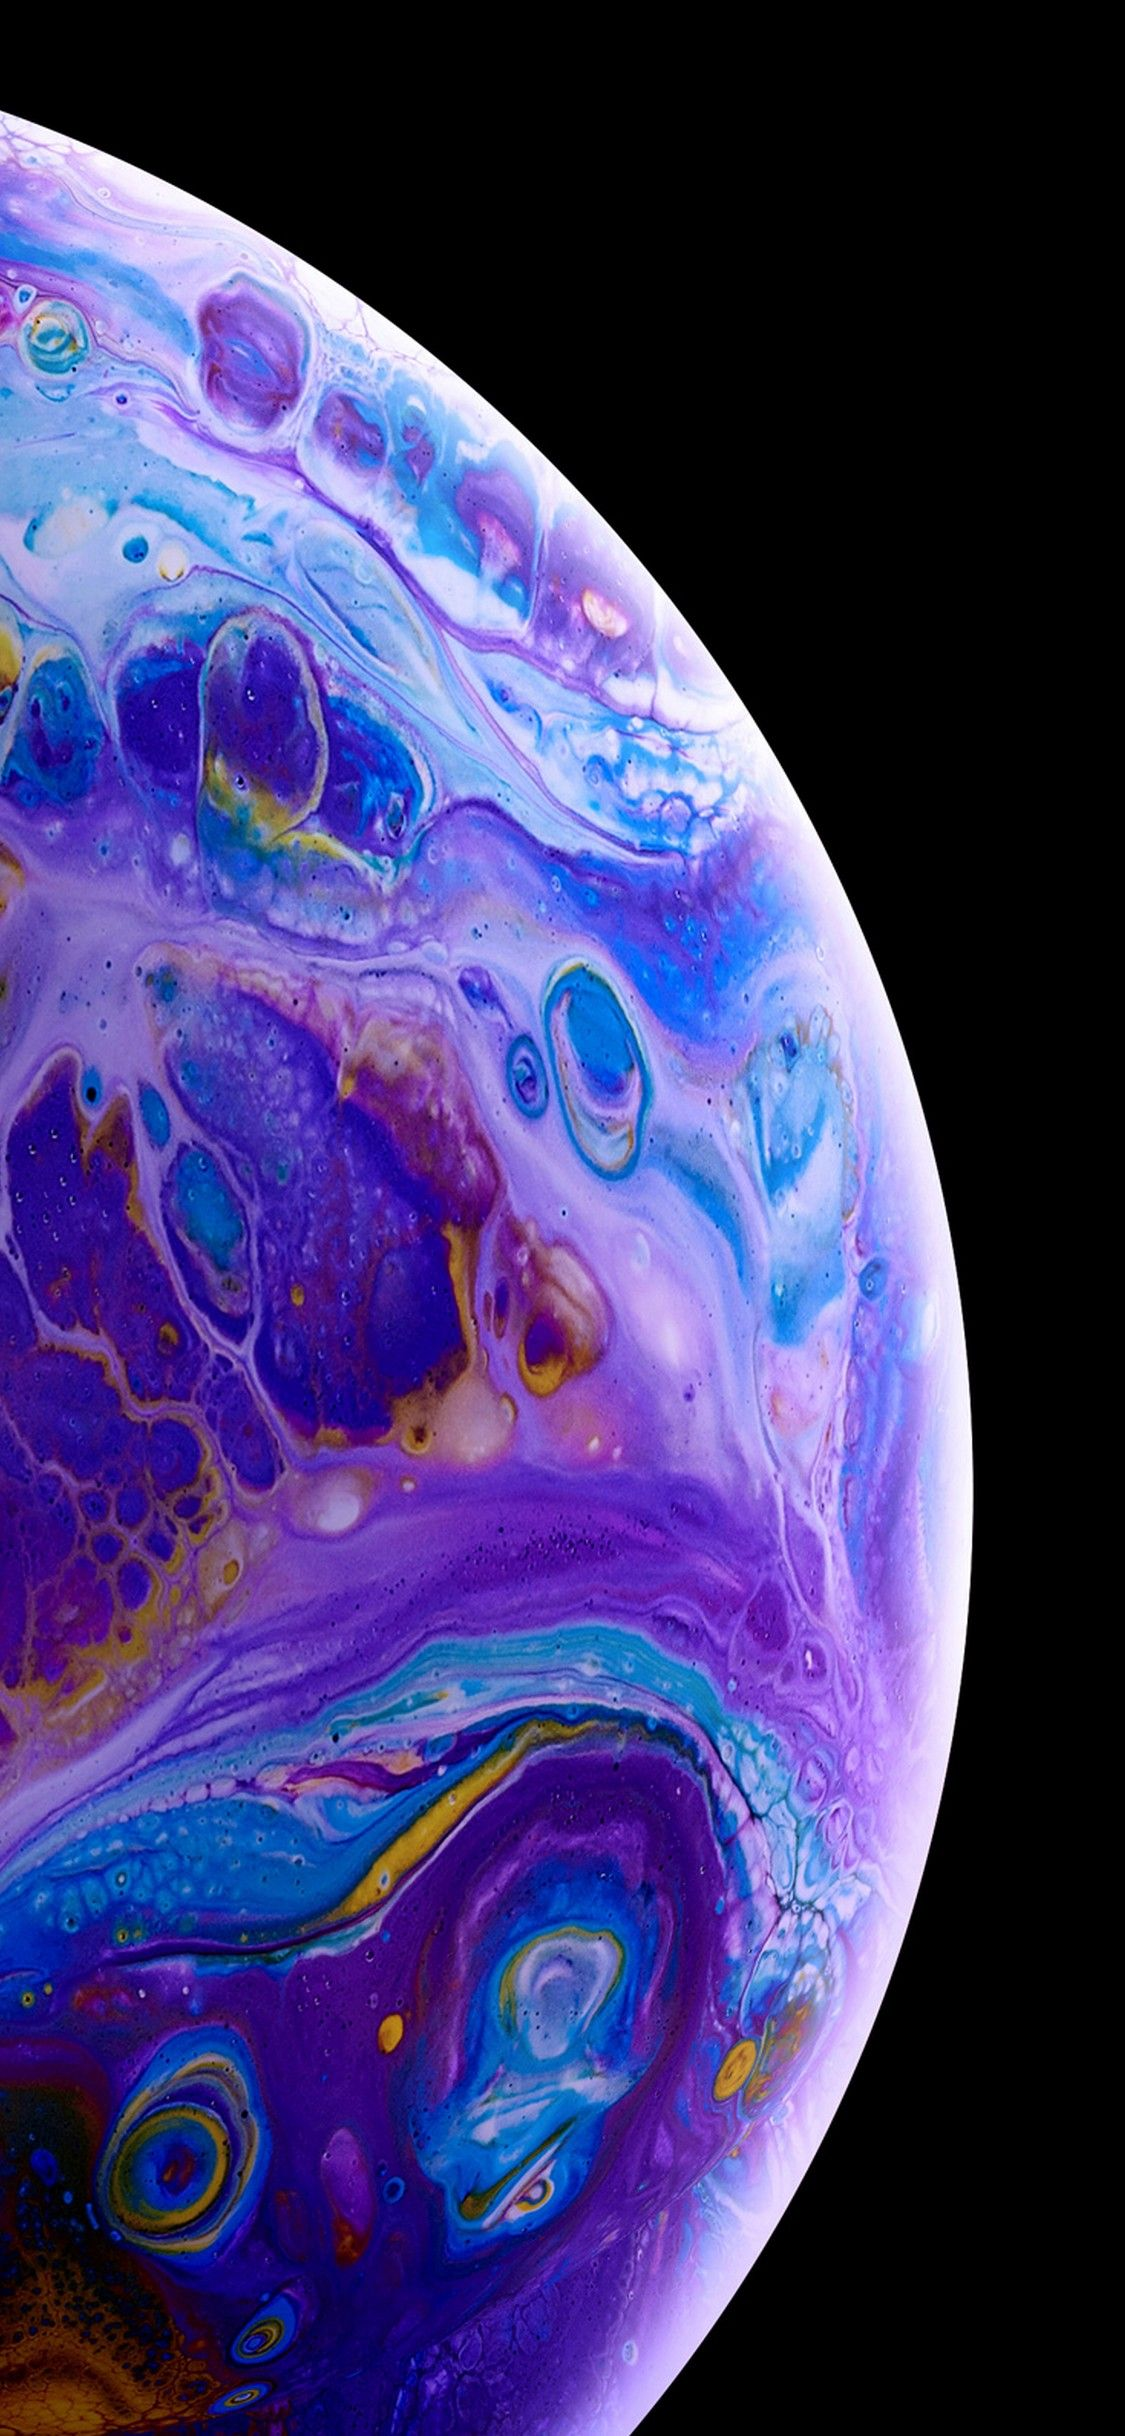 Iphone Xs Planet Wallpapers Top Free Iphone Xs Planet Backgrounds Wallpaperaccess